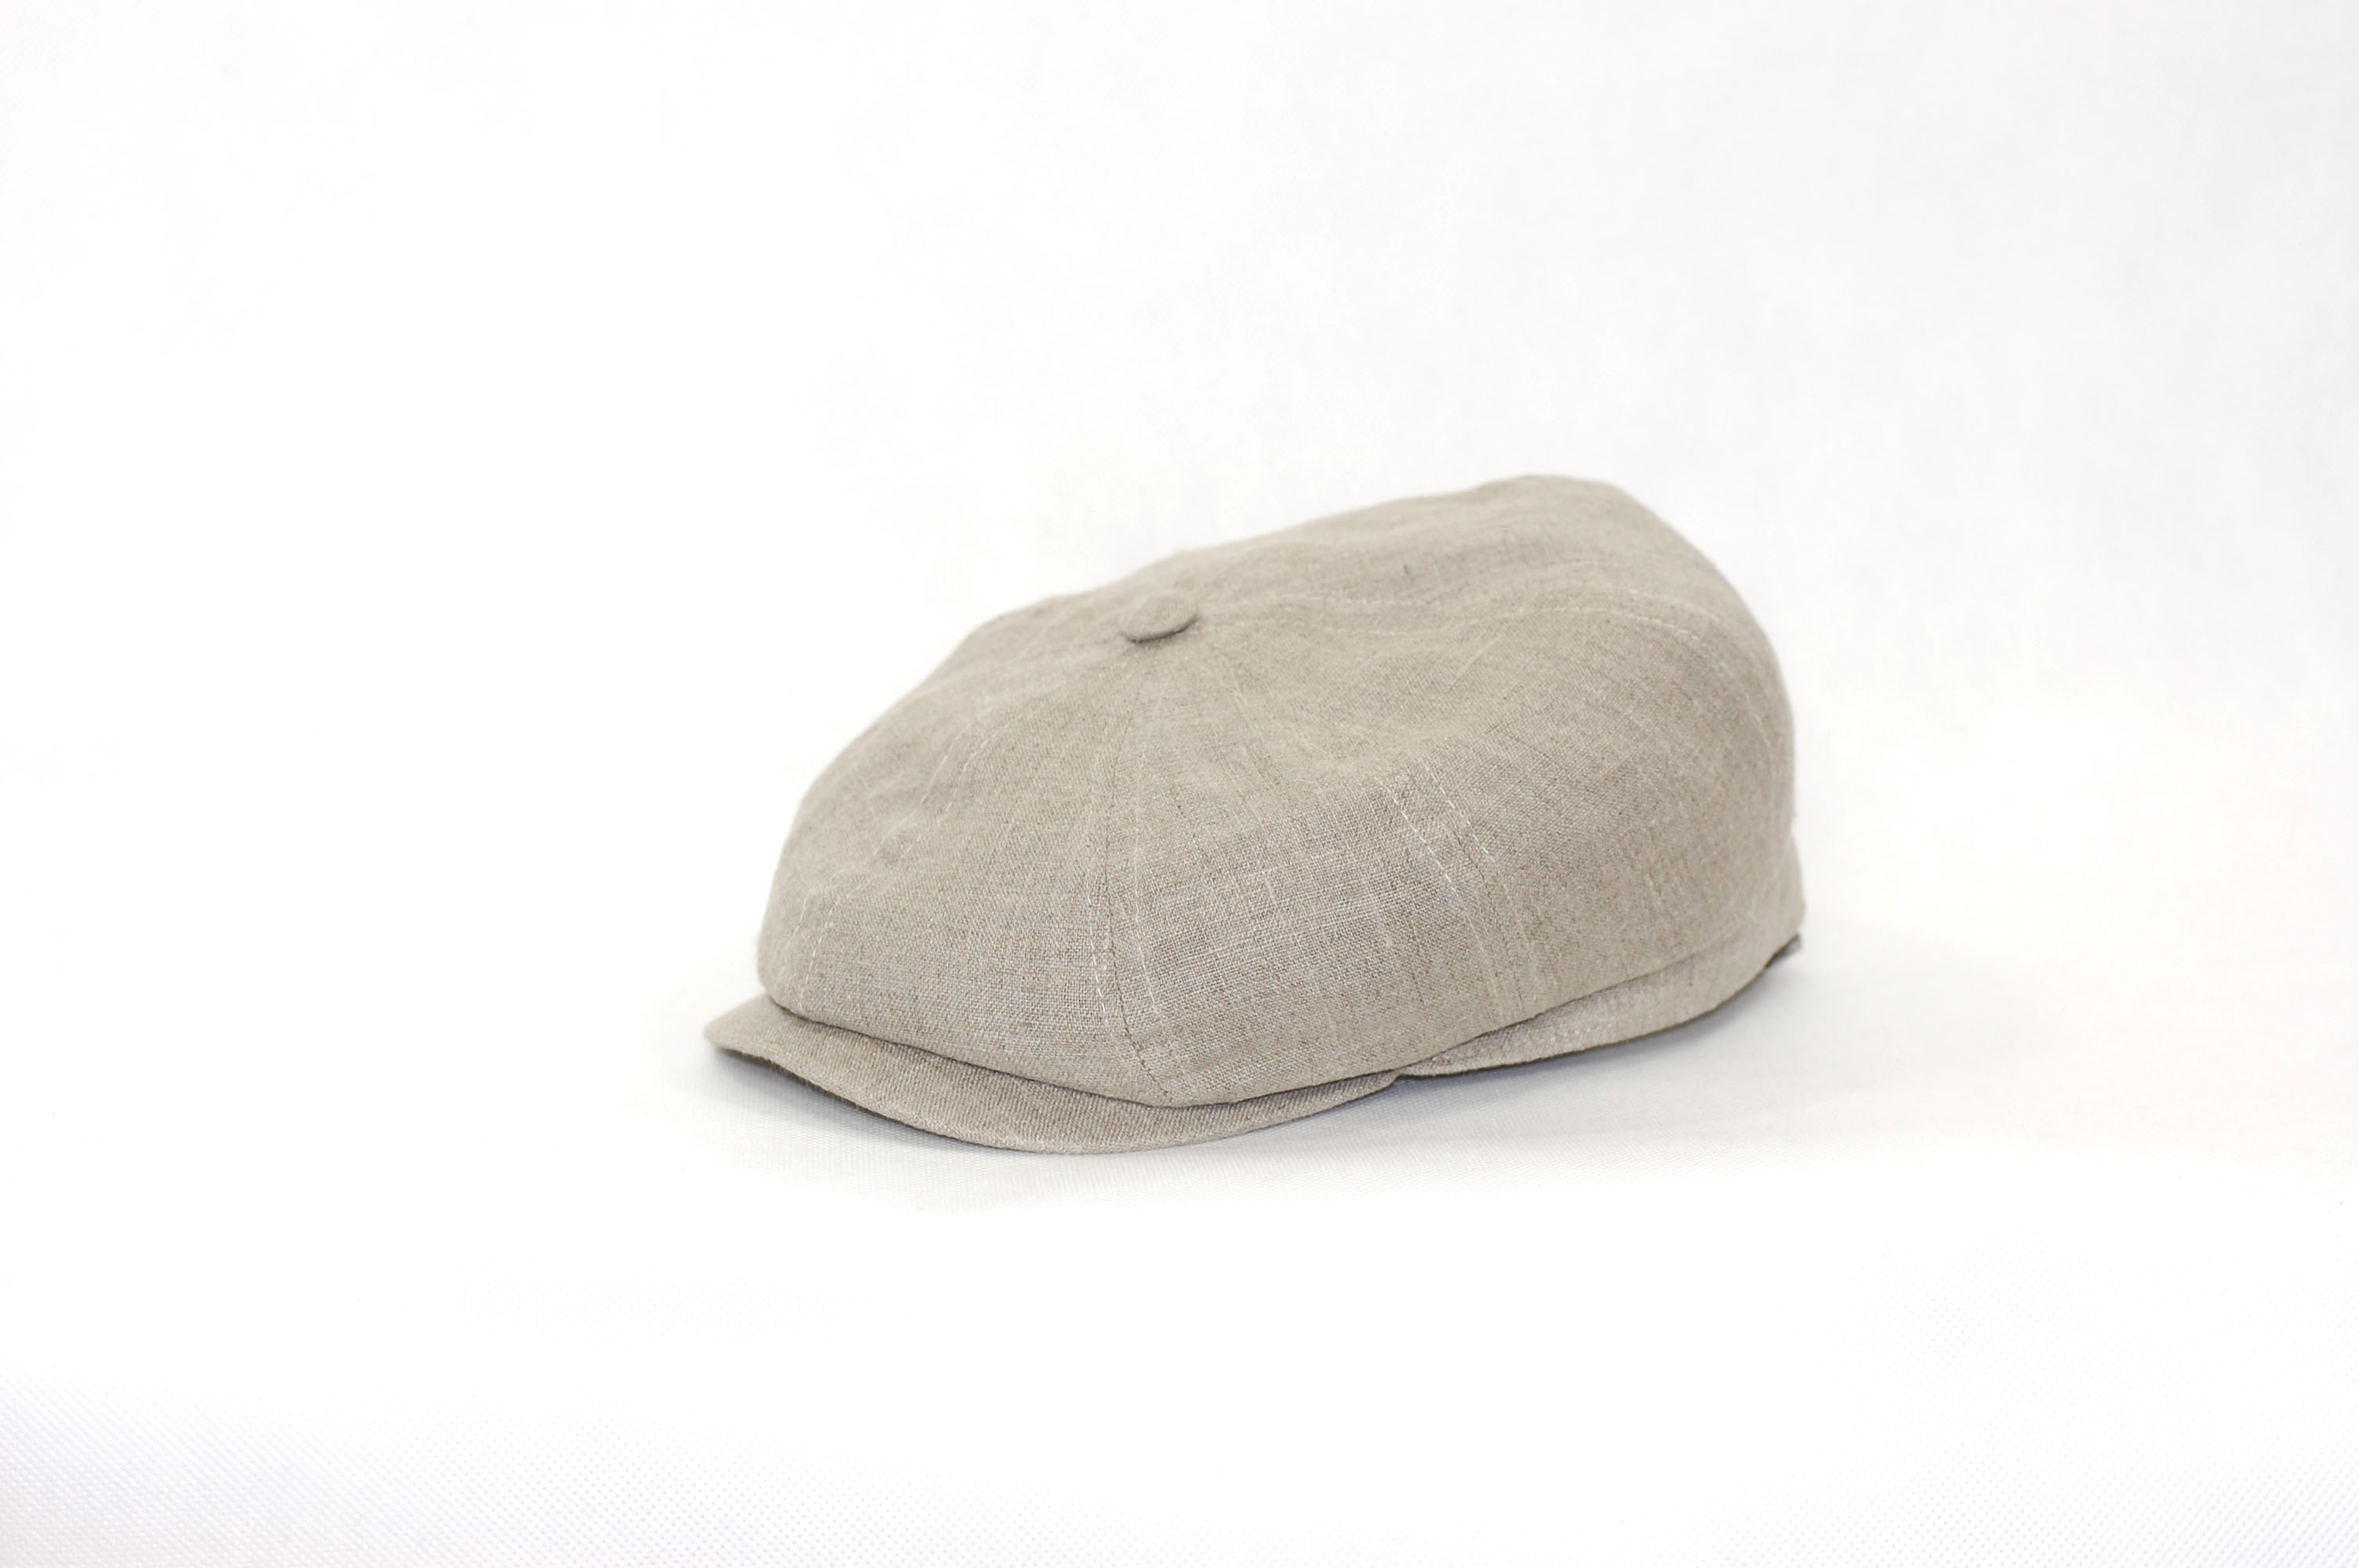 www.contracctor48.com, fabrication locale couvre-chef, cathal caps,linen caps